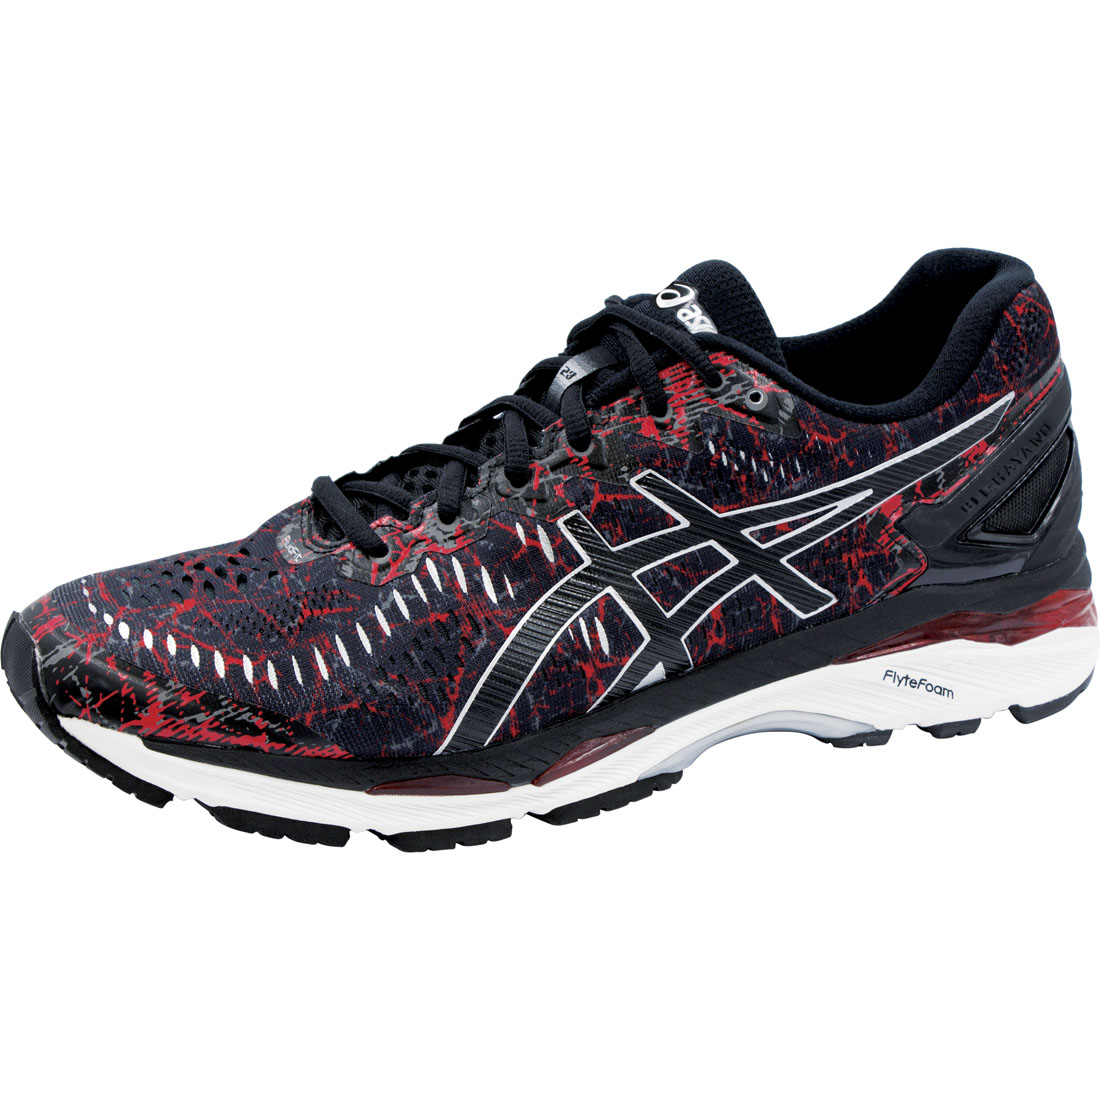 Asics Men's Kayano Premium Athletic Shoe-Asics